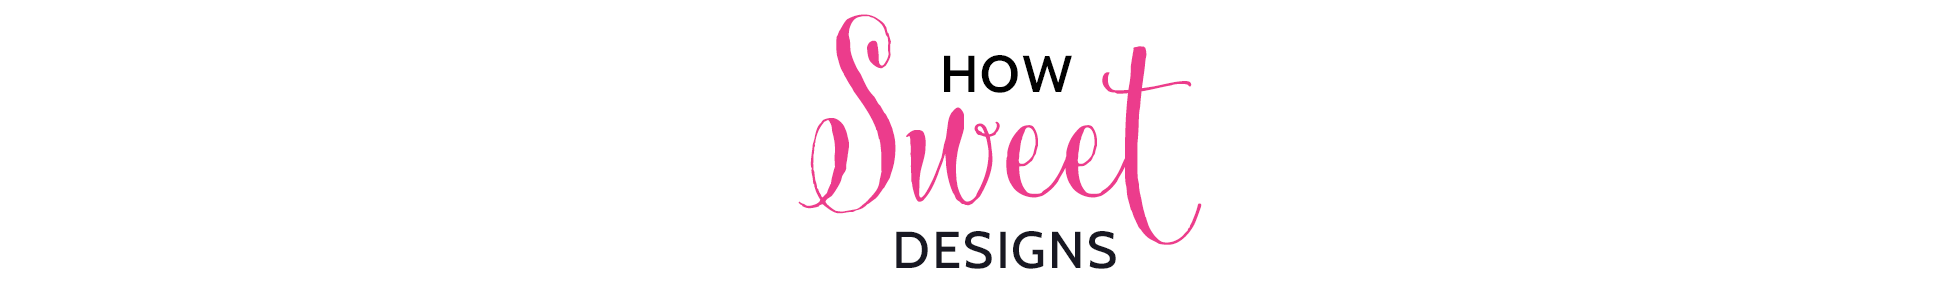 How Sweet Designs